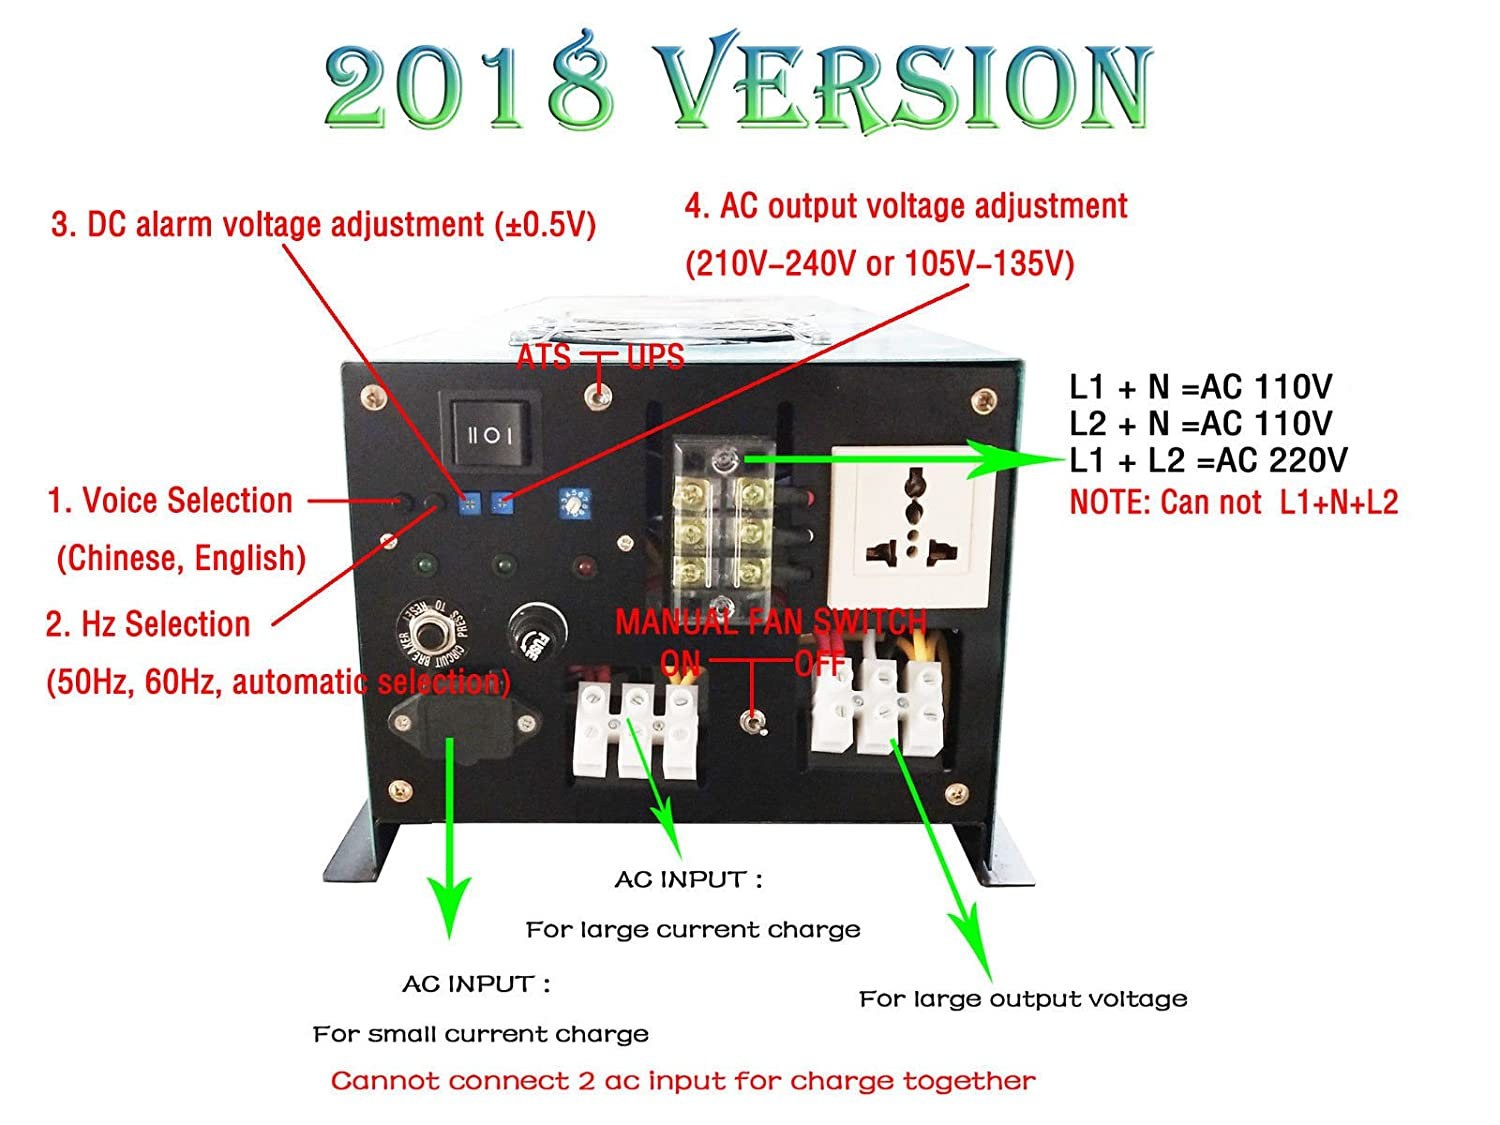 New Ats 12v 32000w Peak 8000w Lf Split Phase Pure Sine How To Decipher The Wiring Schematic Of A 110220v Wave Power Inverter Dc Ac 110v220v 60hz With 120a Bc Ups Lcd Display Car